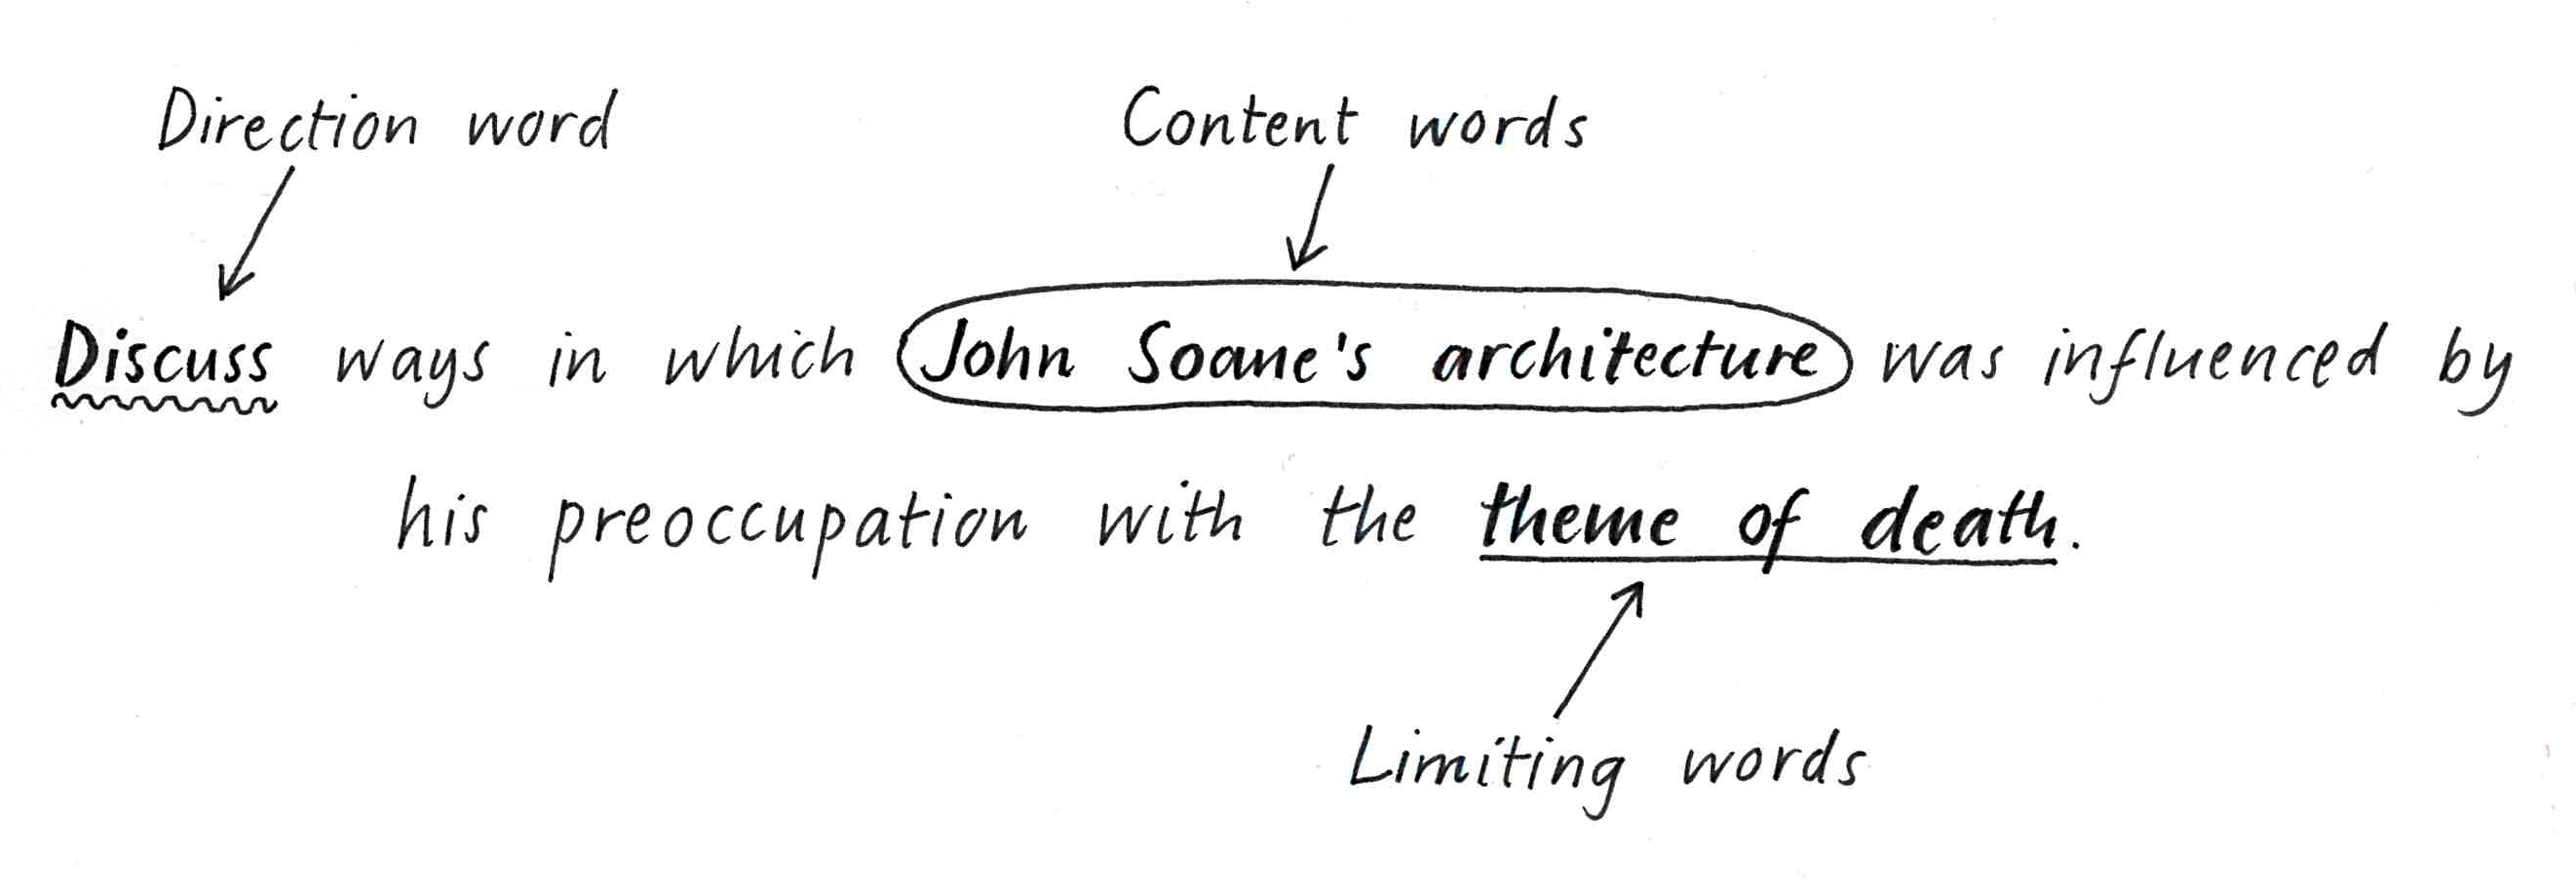 Discuss (direction word) ways in which John Soane's architecture (content words) was influenced by his preoccupation with the theme of death (limiting words)